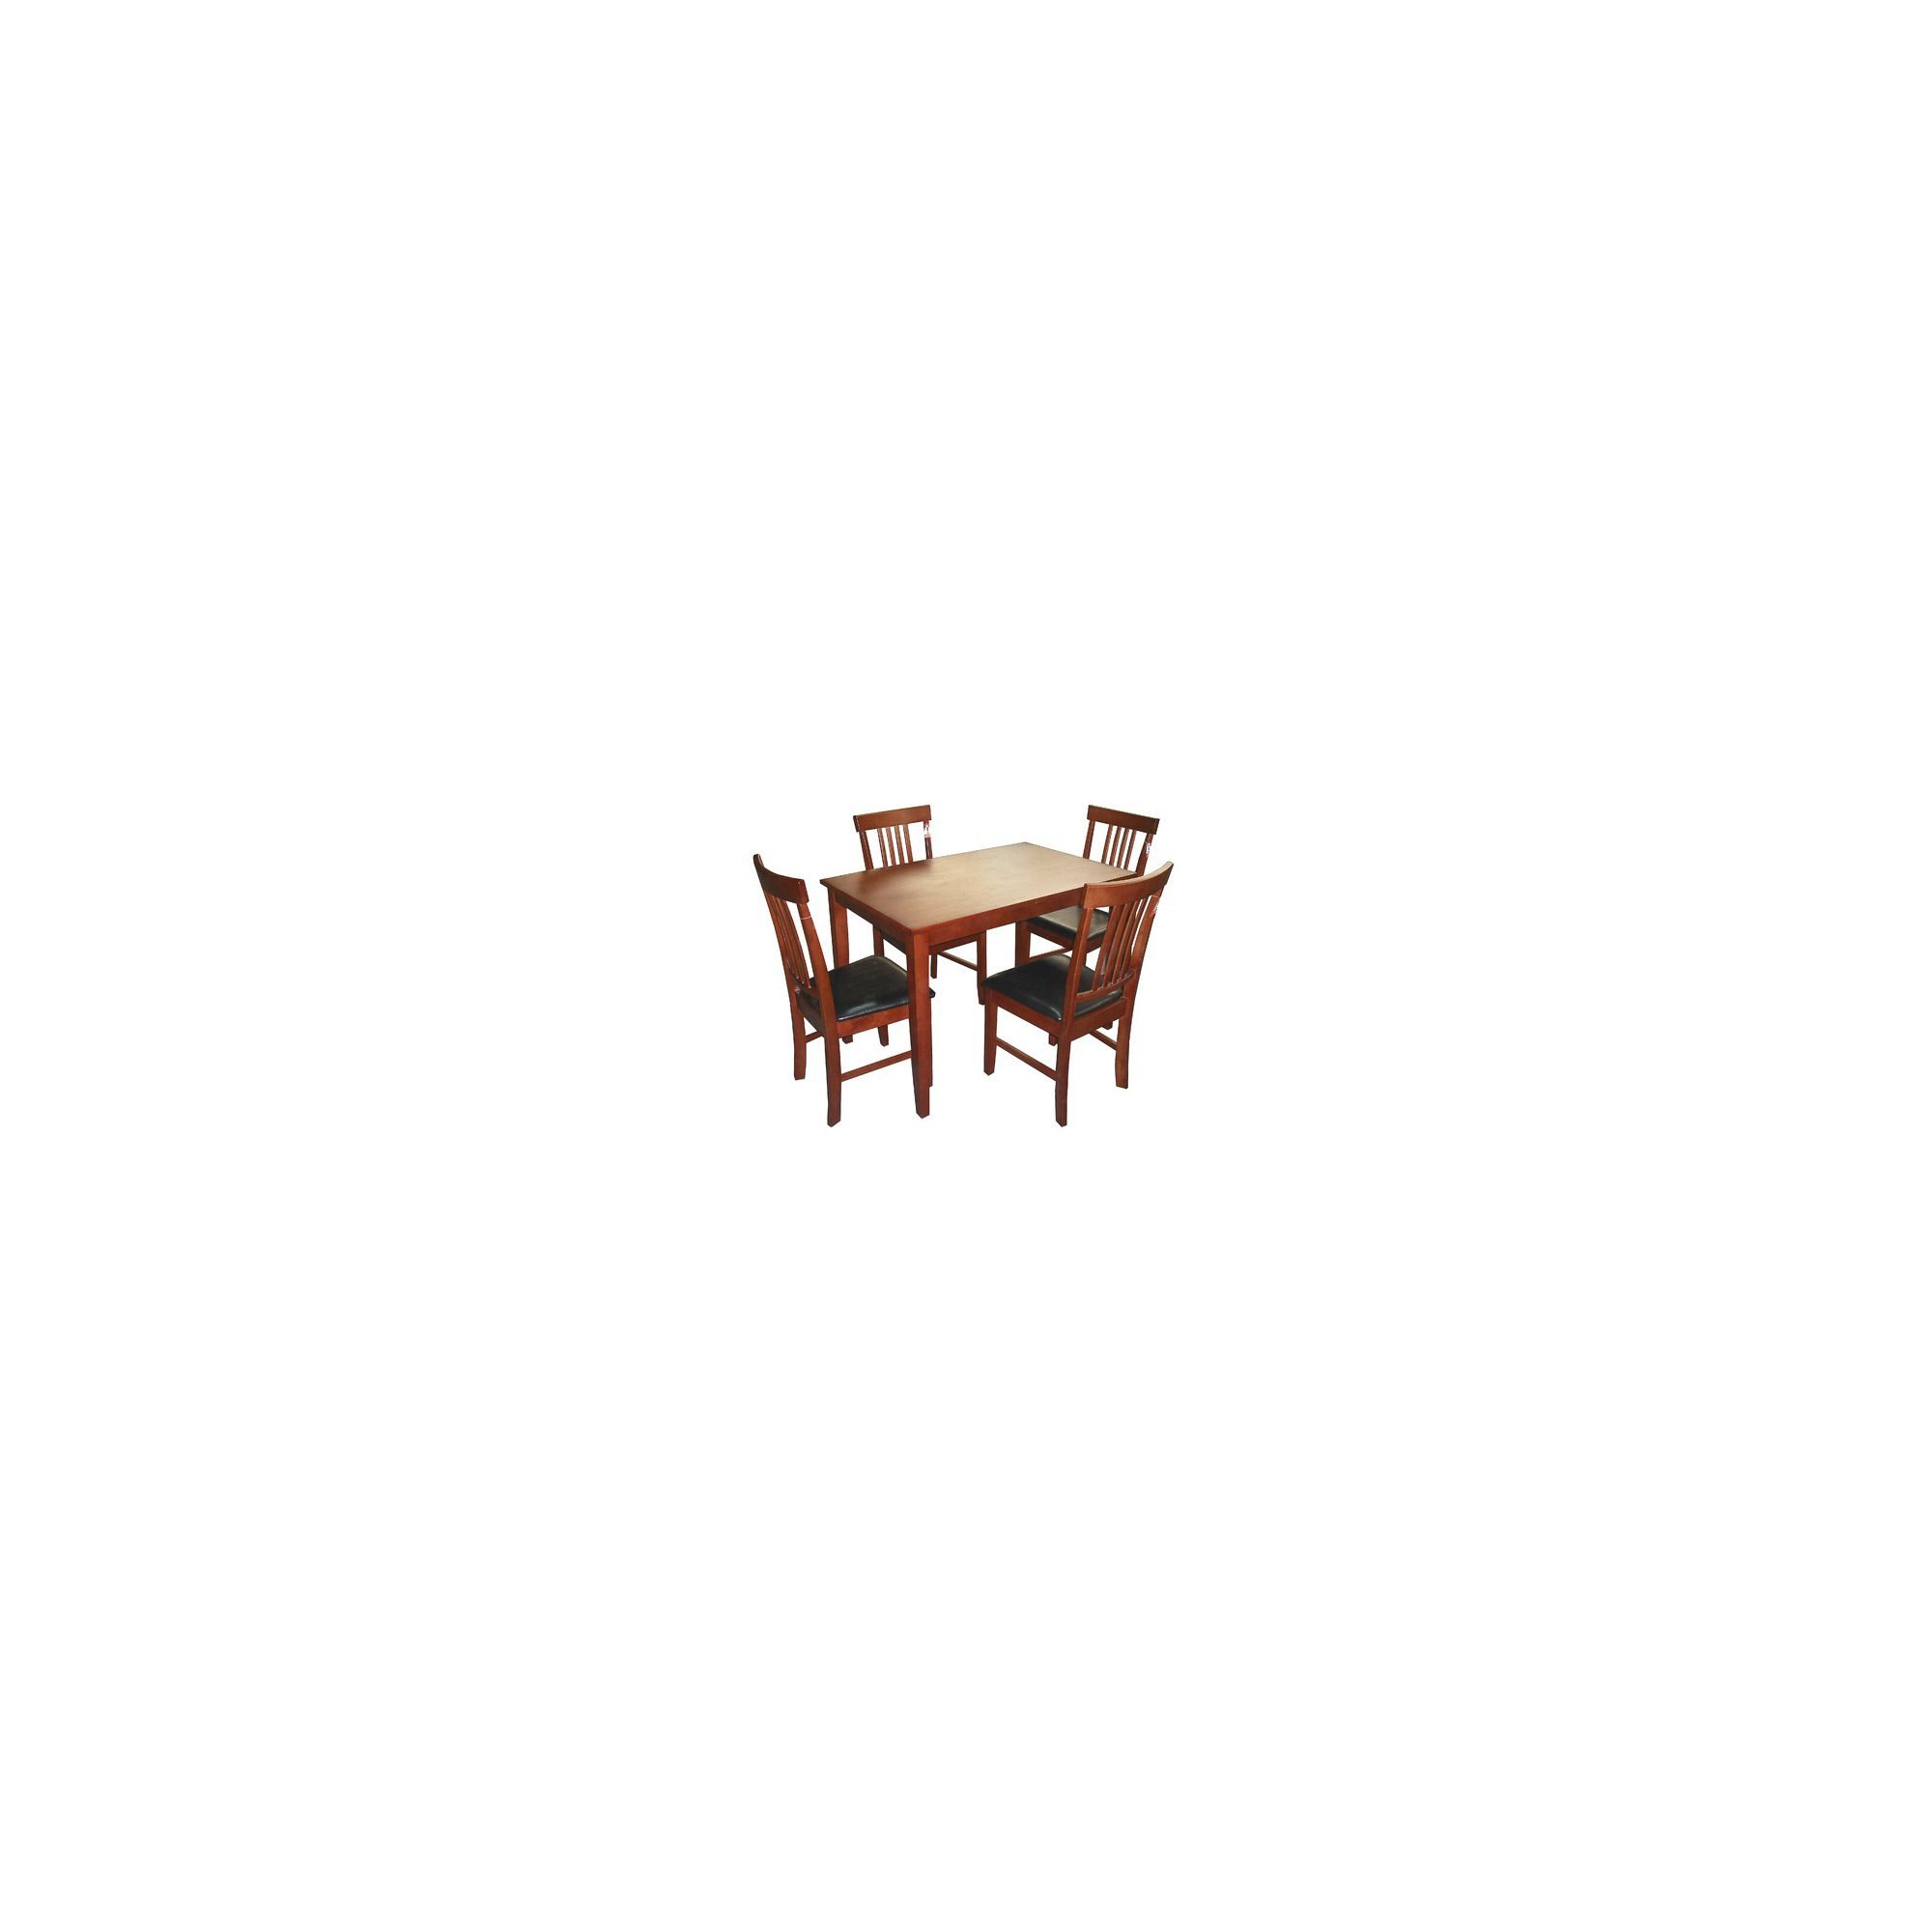 Heartlands Massa 4 Chair Dining Set - Large Table / 6 Chairs - Oak at Tesco Direct